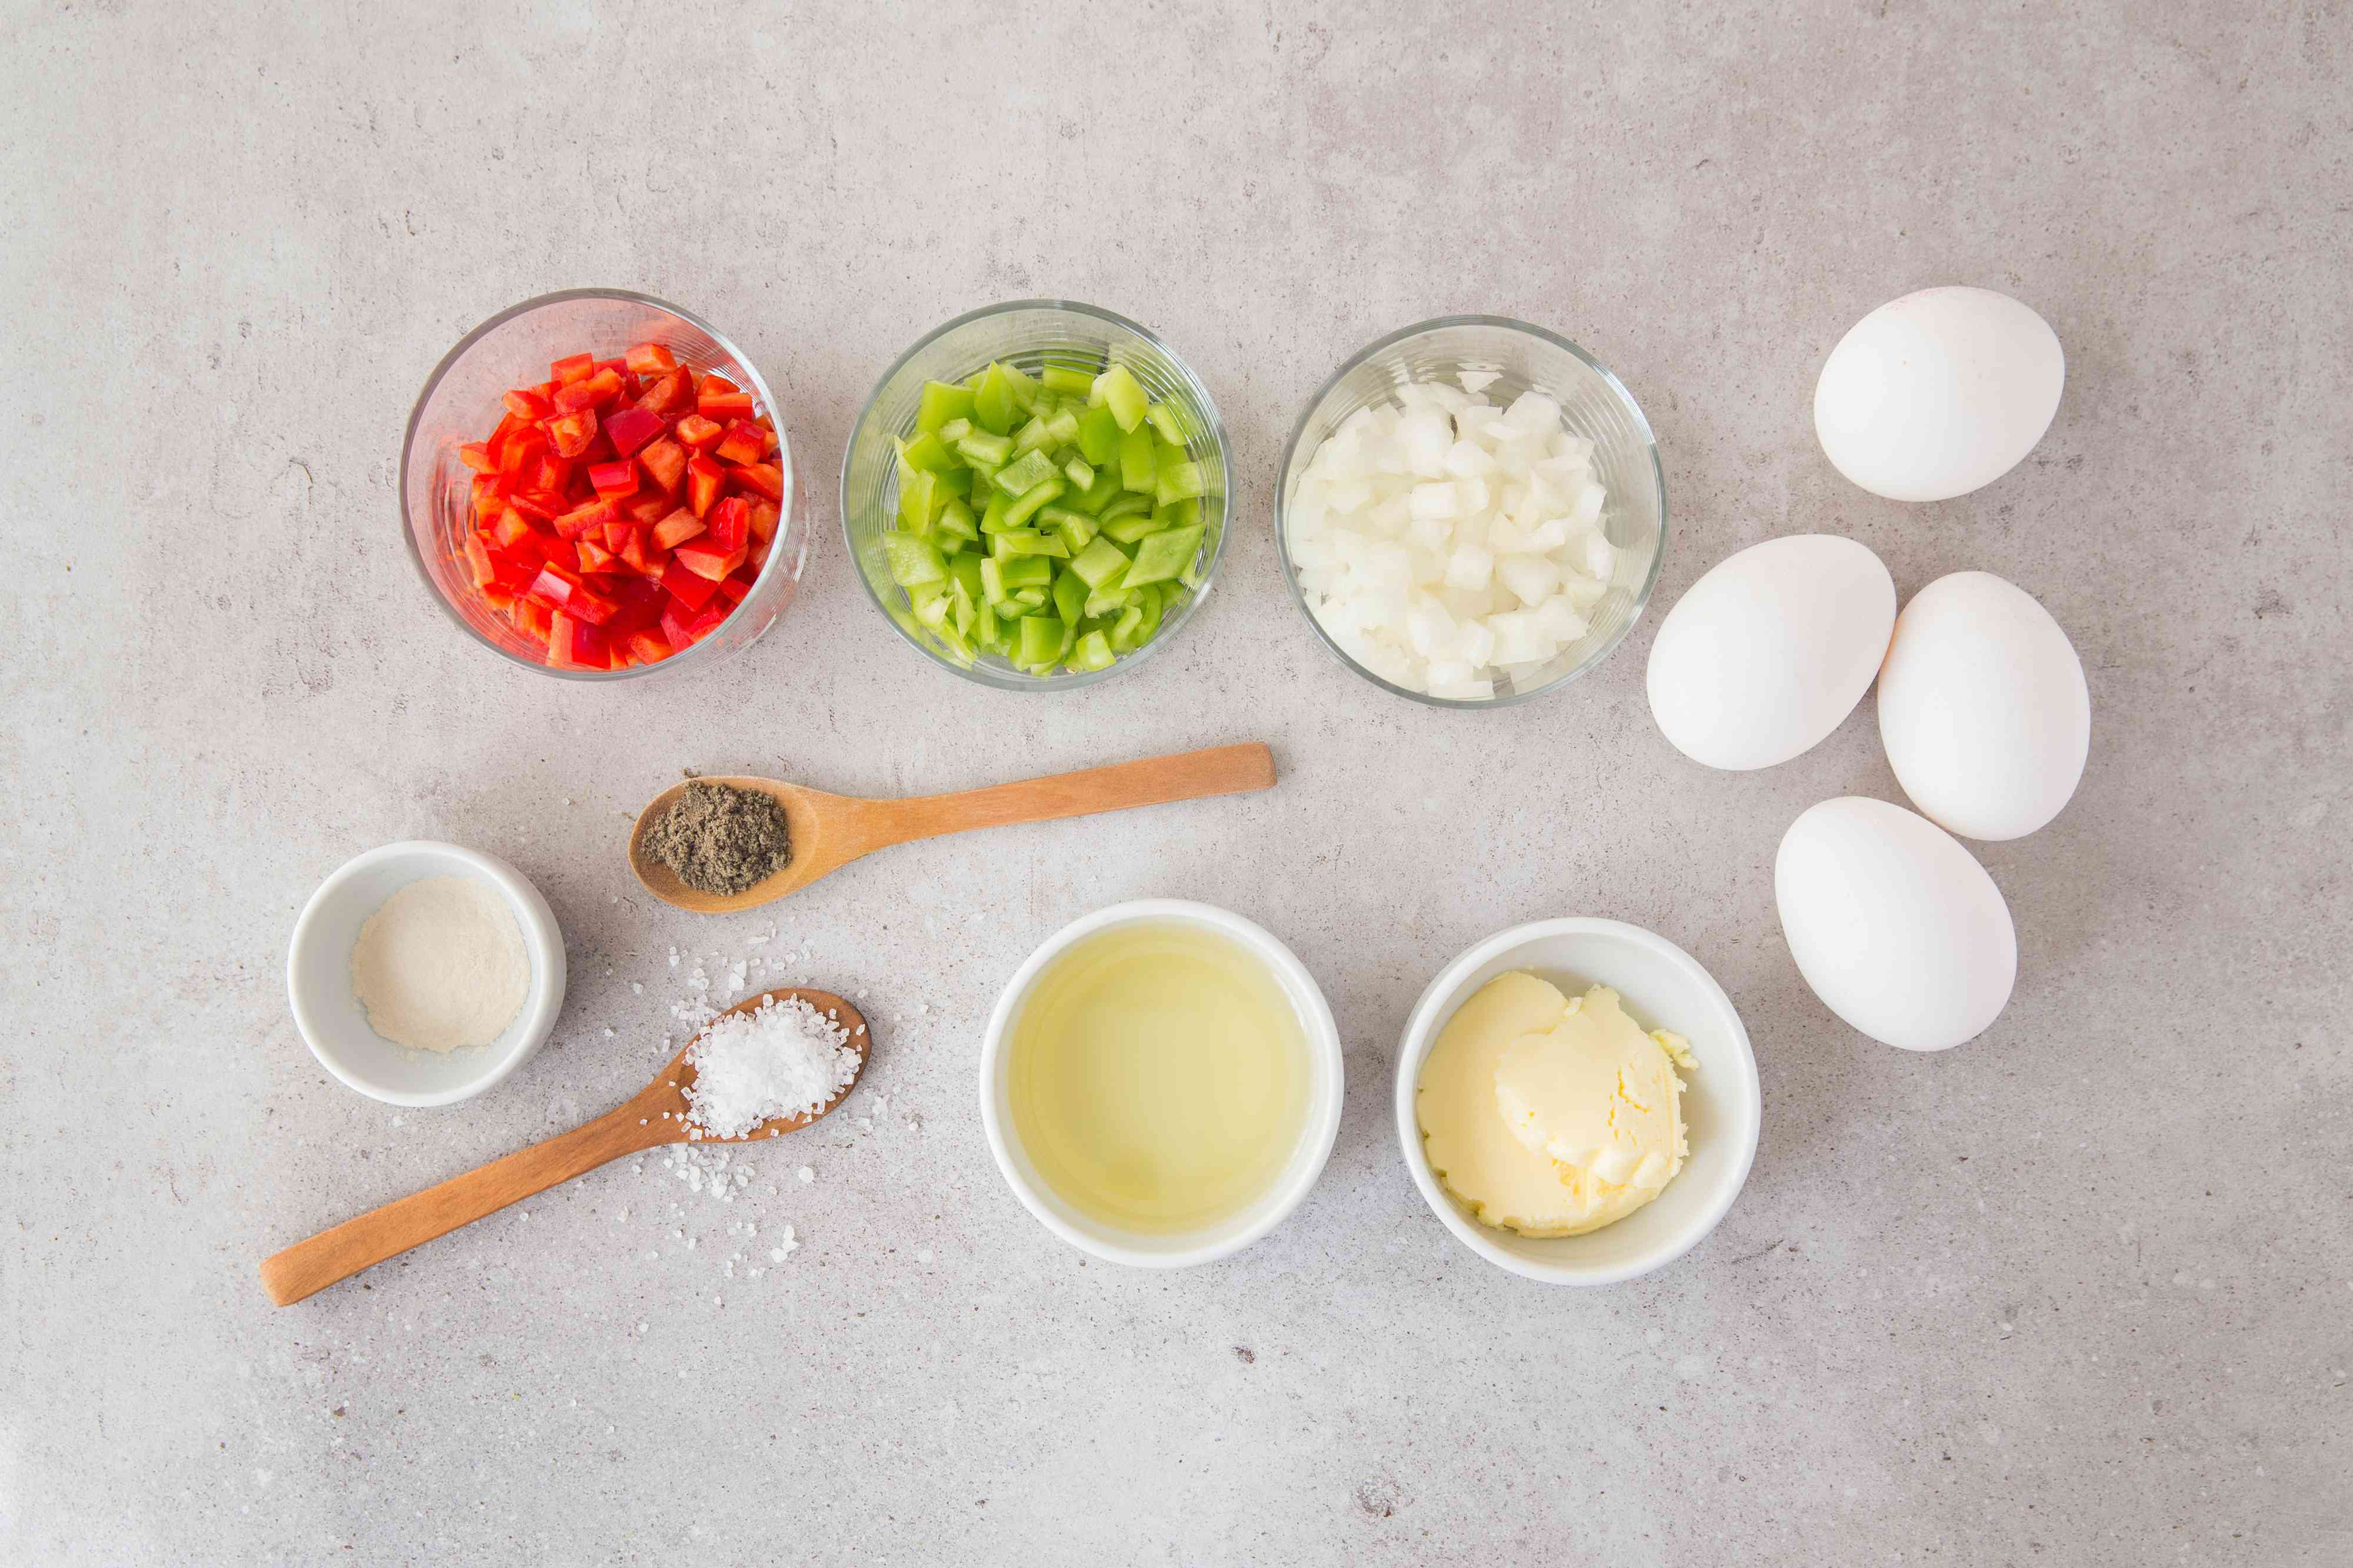 Easy Vegetarian Omelet With Bell Peppers ingredients